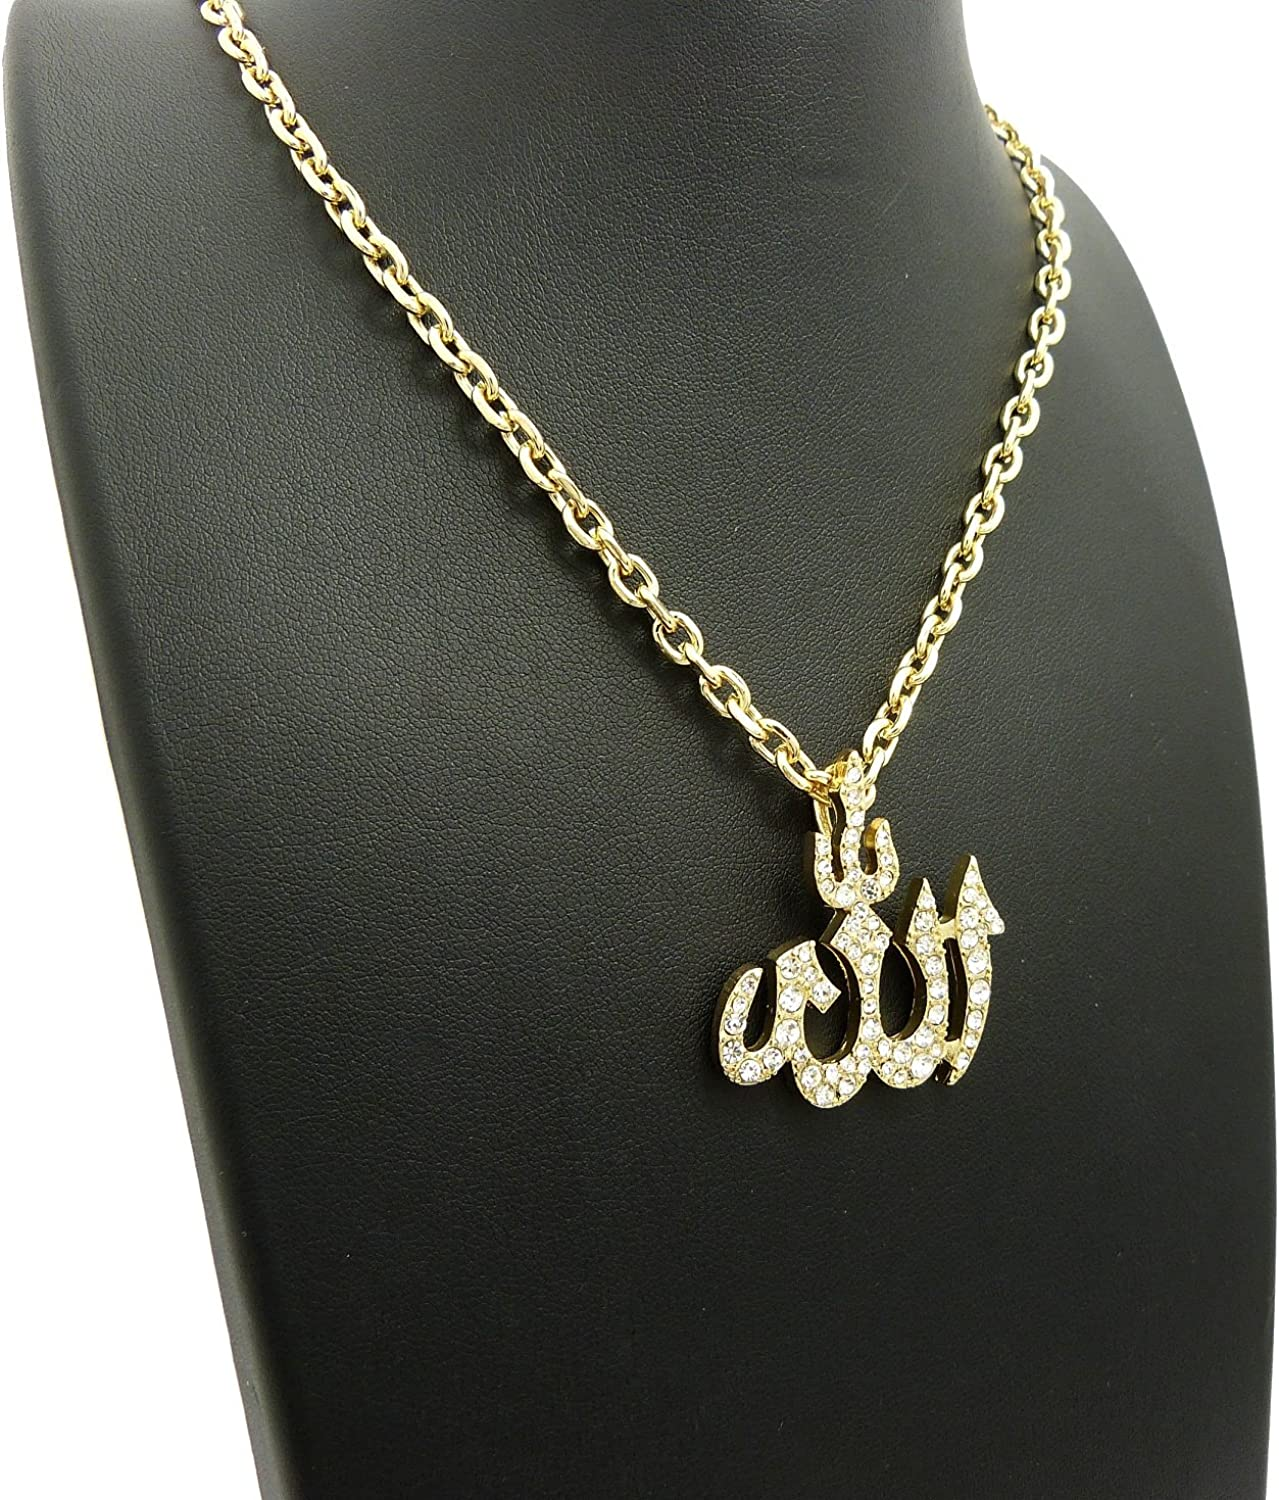 Silver Tone Plated Fashion 21 Arabic Allah Pendant 24 inches Various Chain Necklace in Gold